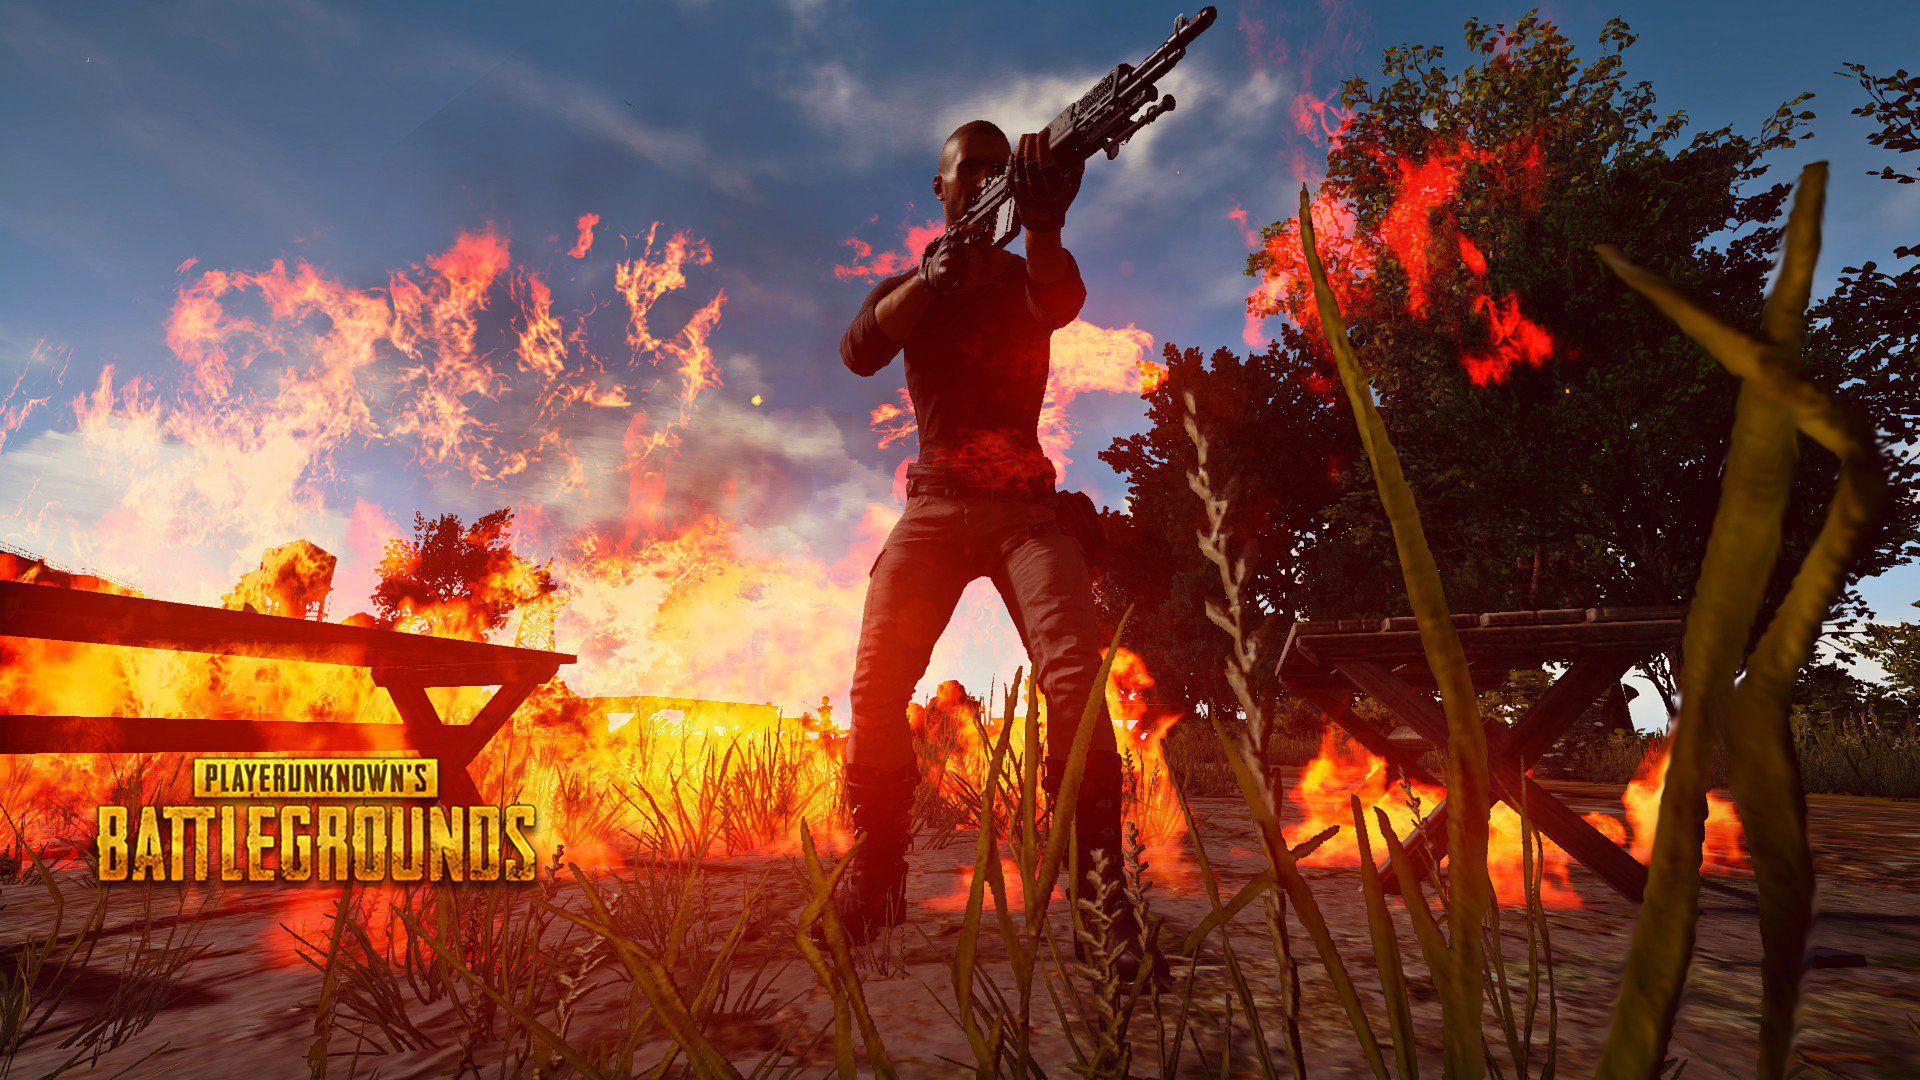 Pubg Full Hd Wallpaper Download For Pc: PlayerUnknown's Battlegrounds: PUBG Wallpapers And Photos